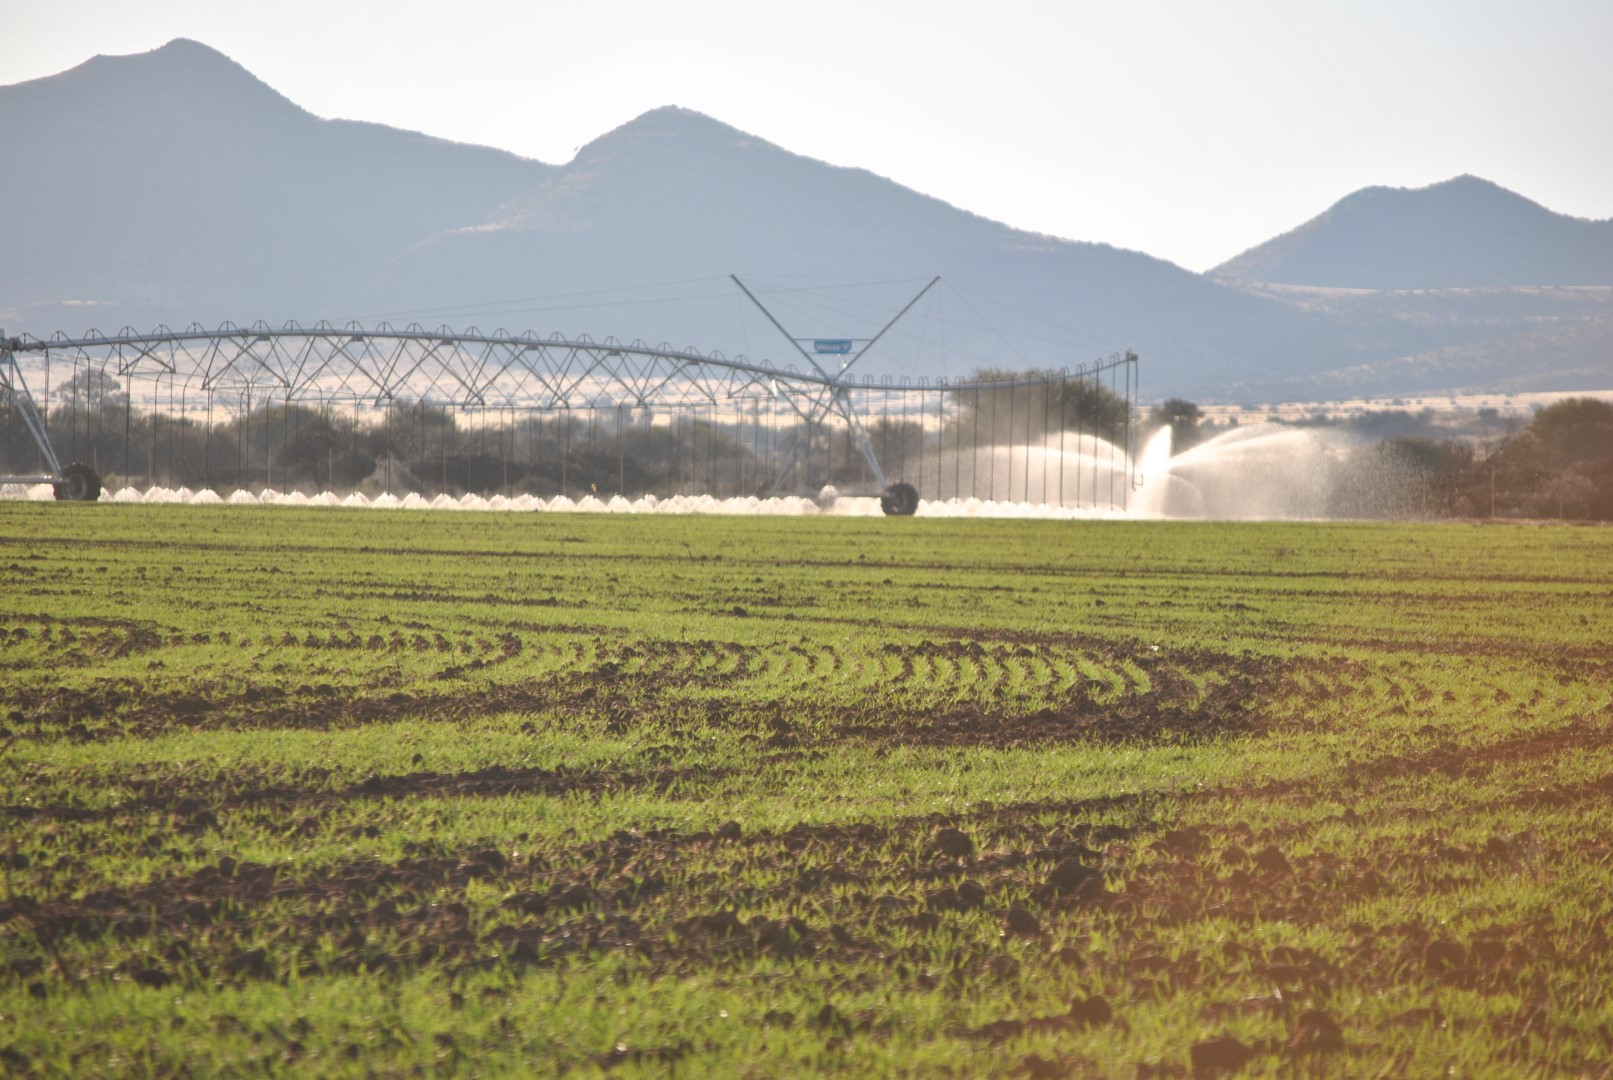 Farm irrigation system in a field with mountain background